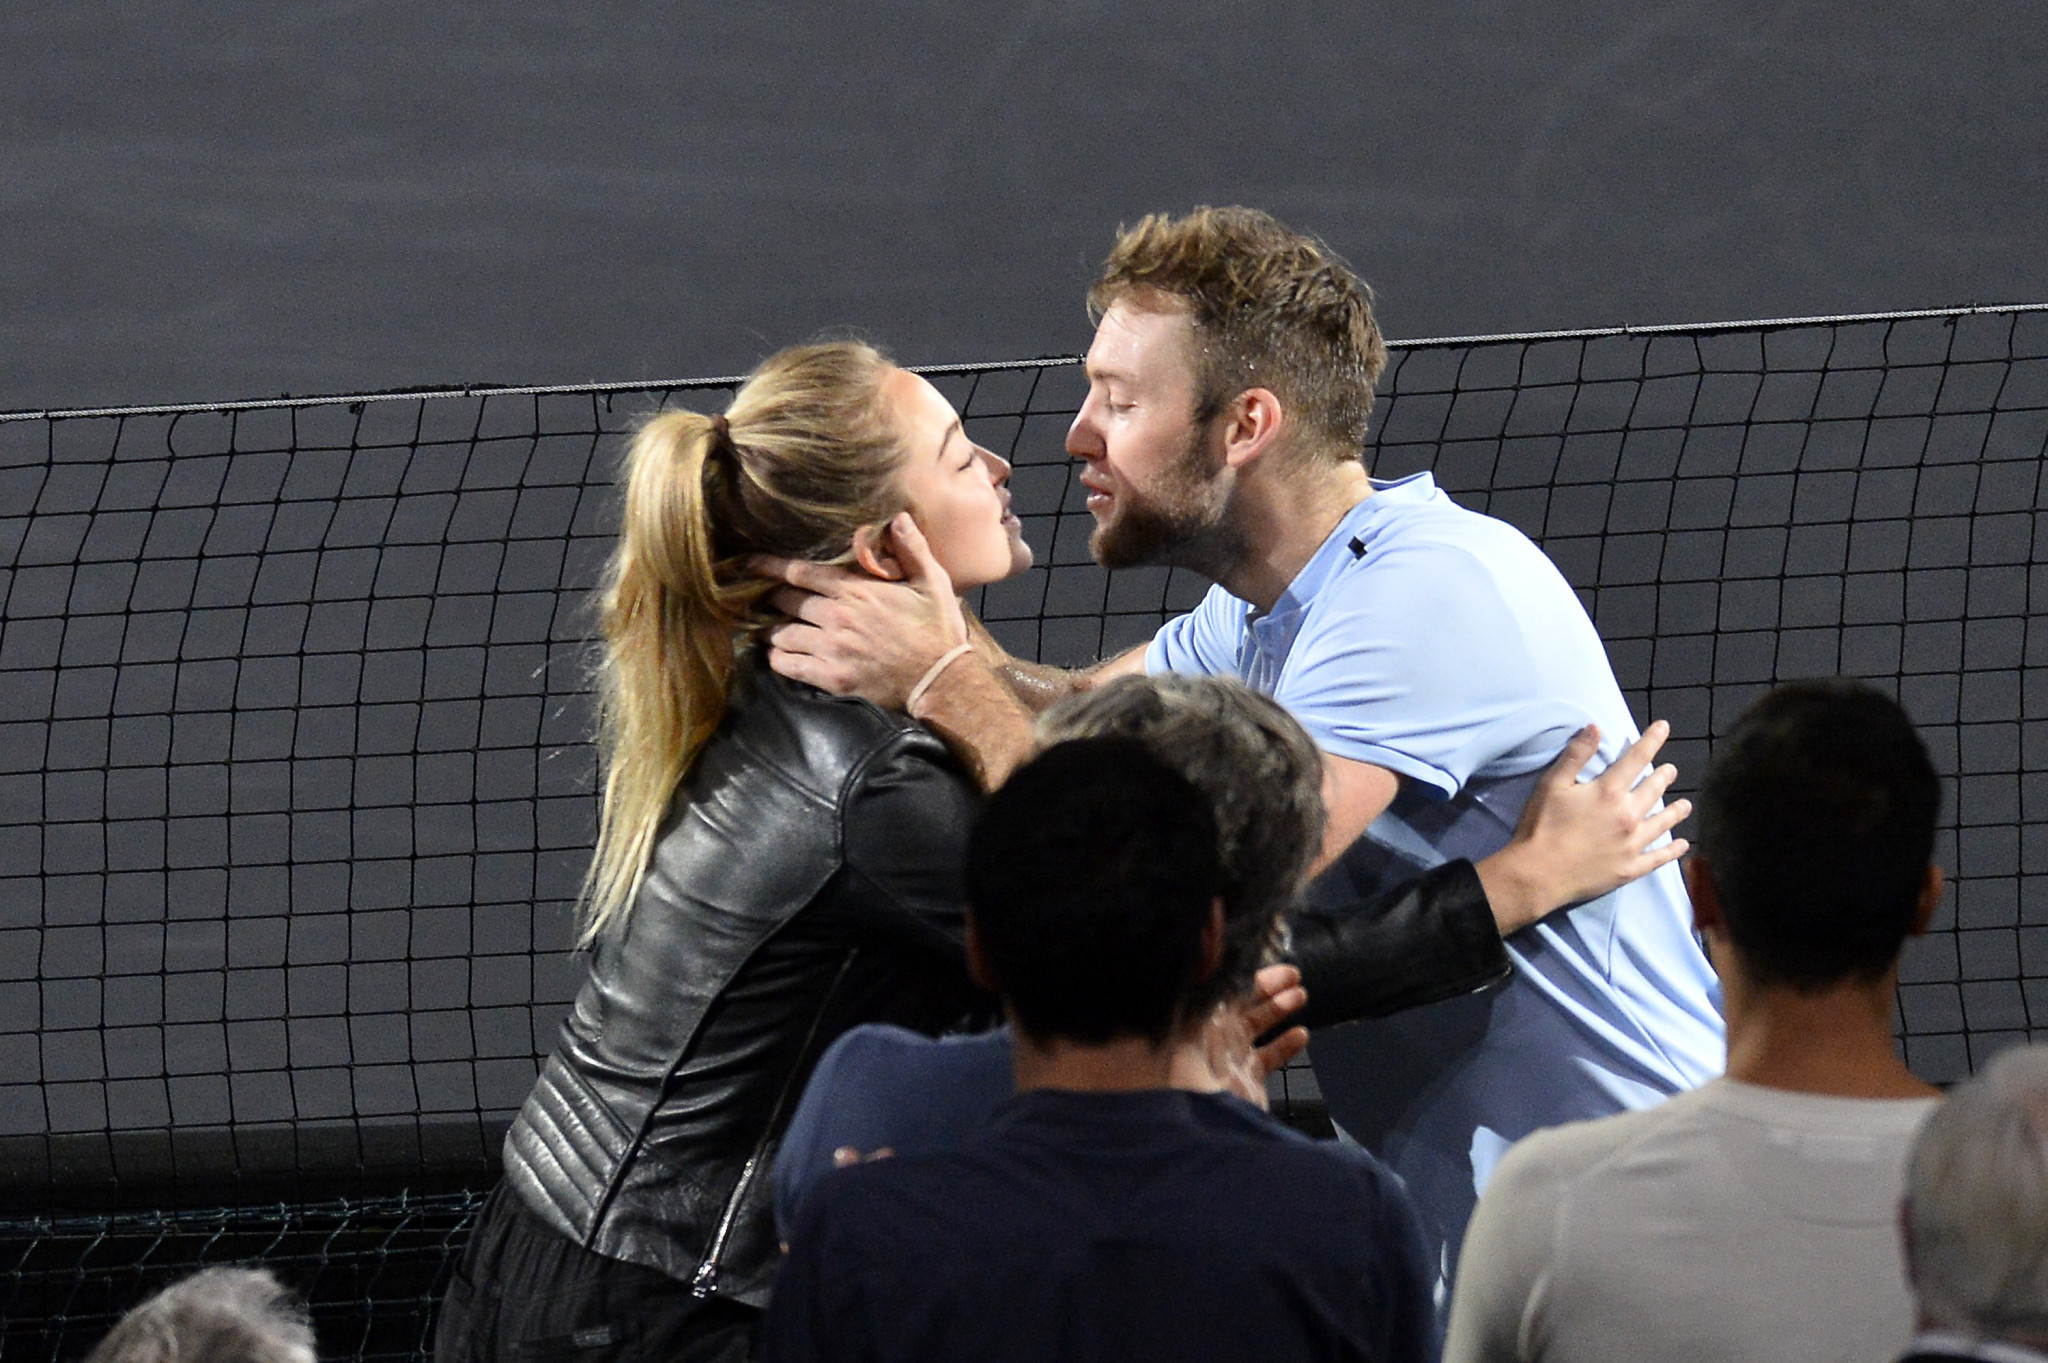 Jack Sock, of the United States, kisses his girlfriend Michala Burns after winning the men's singles against Filip Krajinovic, of Serbia, at the Rolex Paris Masters ©Getty Images